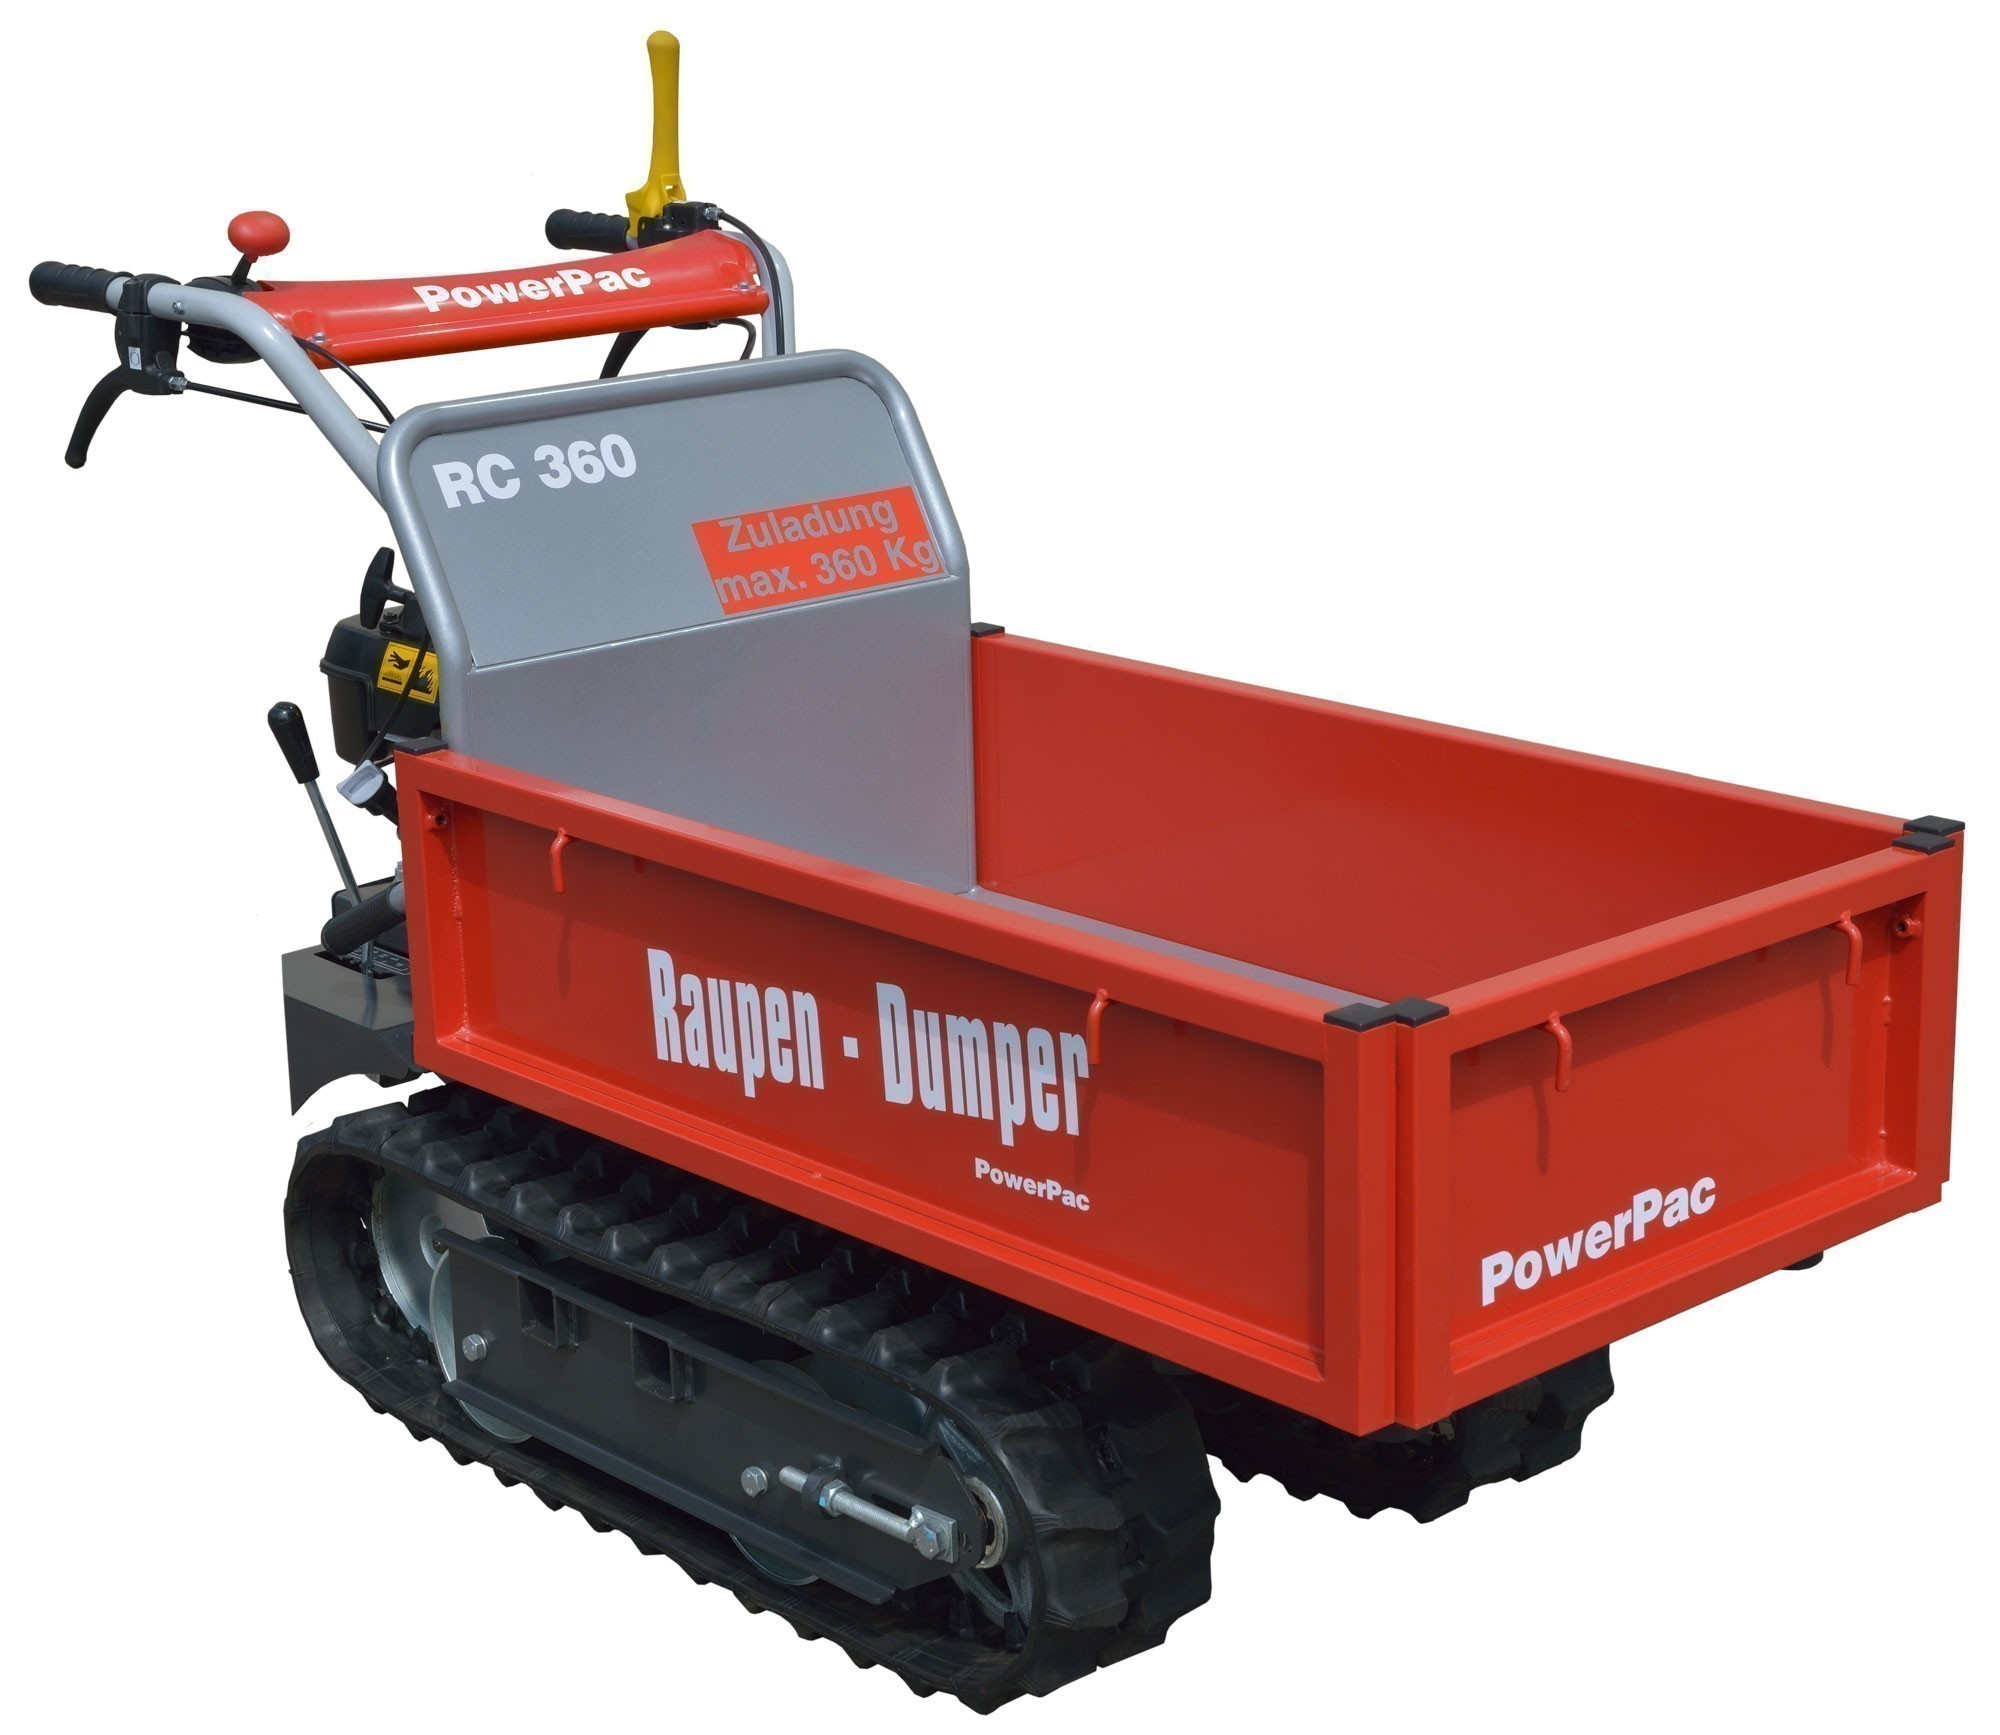 Powerpac Raupendumper / Raupen-Caddy RC360 Bild 1